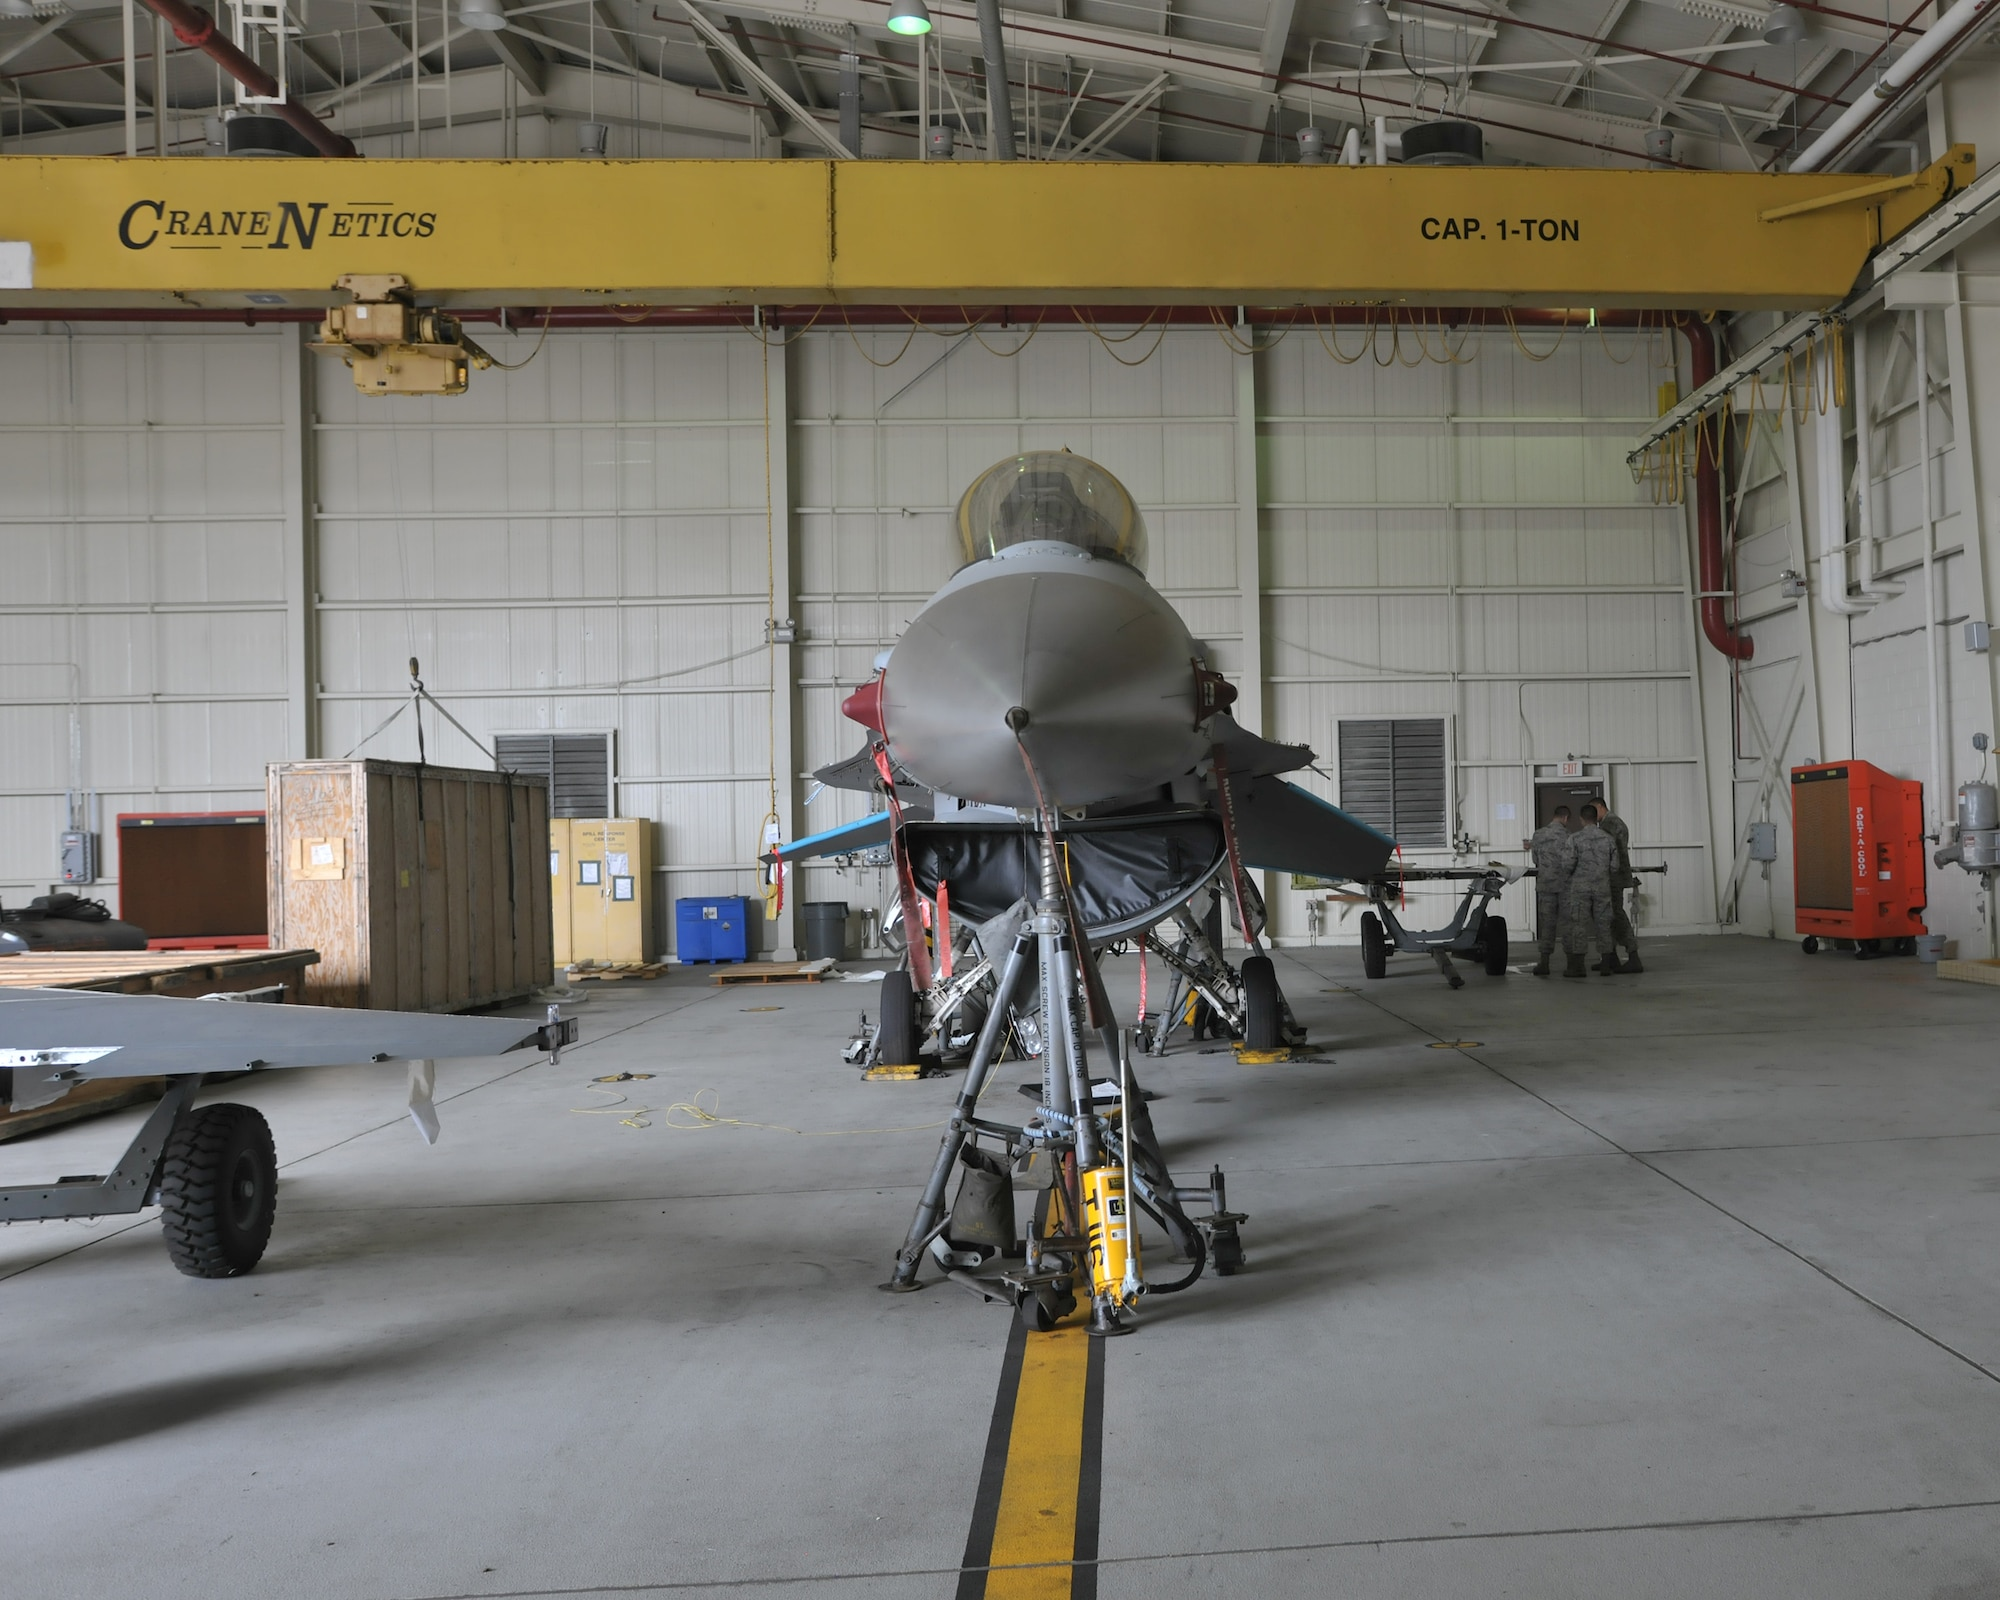 An 8th Fighter Wing F-16 undergoes a simultaneous double-wing replacement at Kunsan Air Base, Republic of Korea, June 24, 2016. This procedure requires crew chiefs and maintainers from aircraft fuels systems, aircraft armament systems and aircraft structural maintenance working in harmony to ensure the replacement of the wings is done correctly and the aircraft is returned to duty. (U.S. Air Force photo/Master Sgt. David Miller)